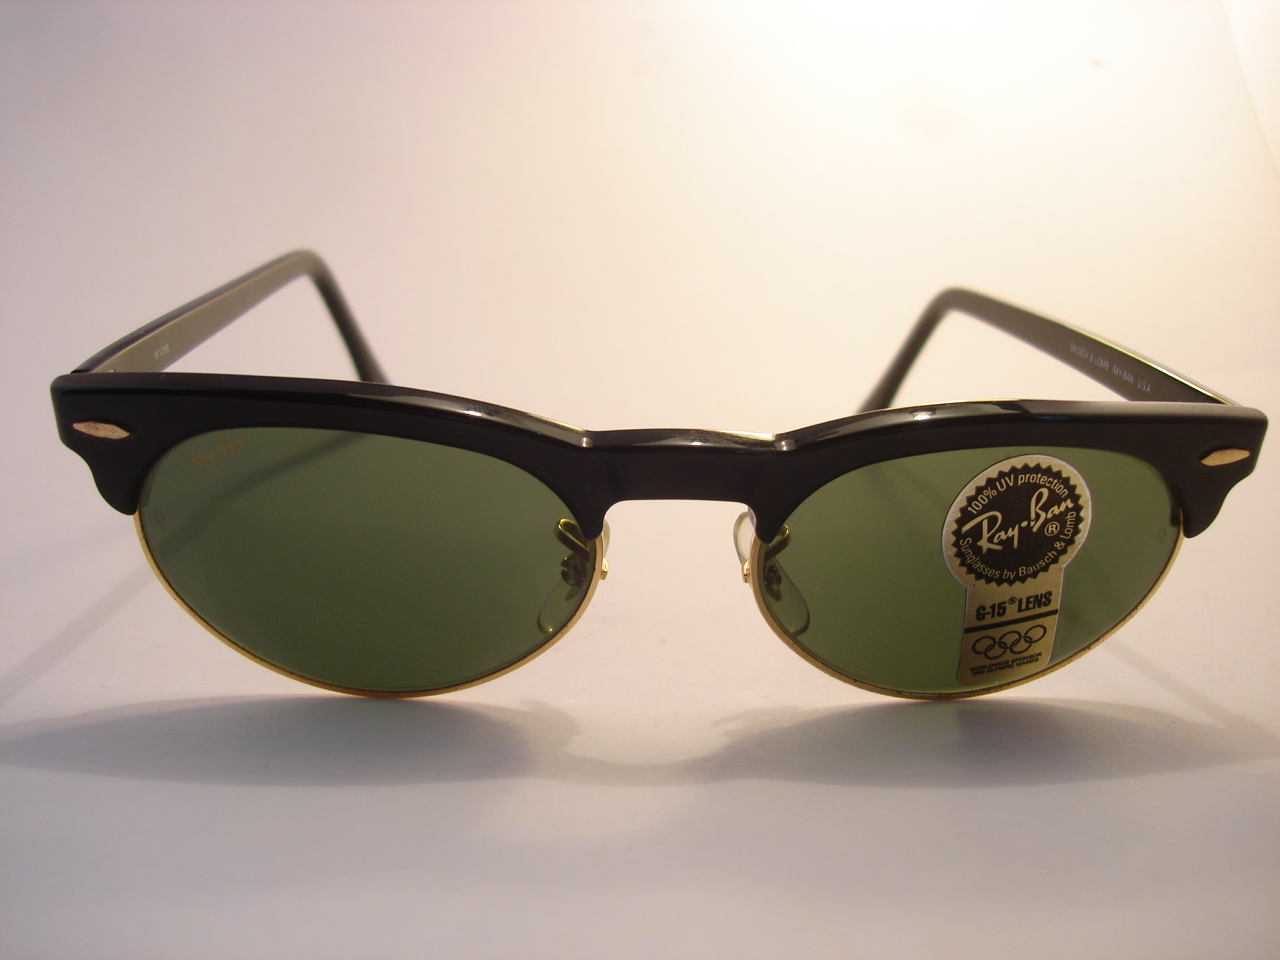 Theothersideofthepillow: Vintage RAY BAN By BAUSCH AND